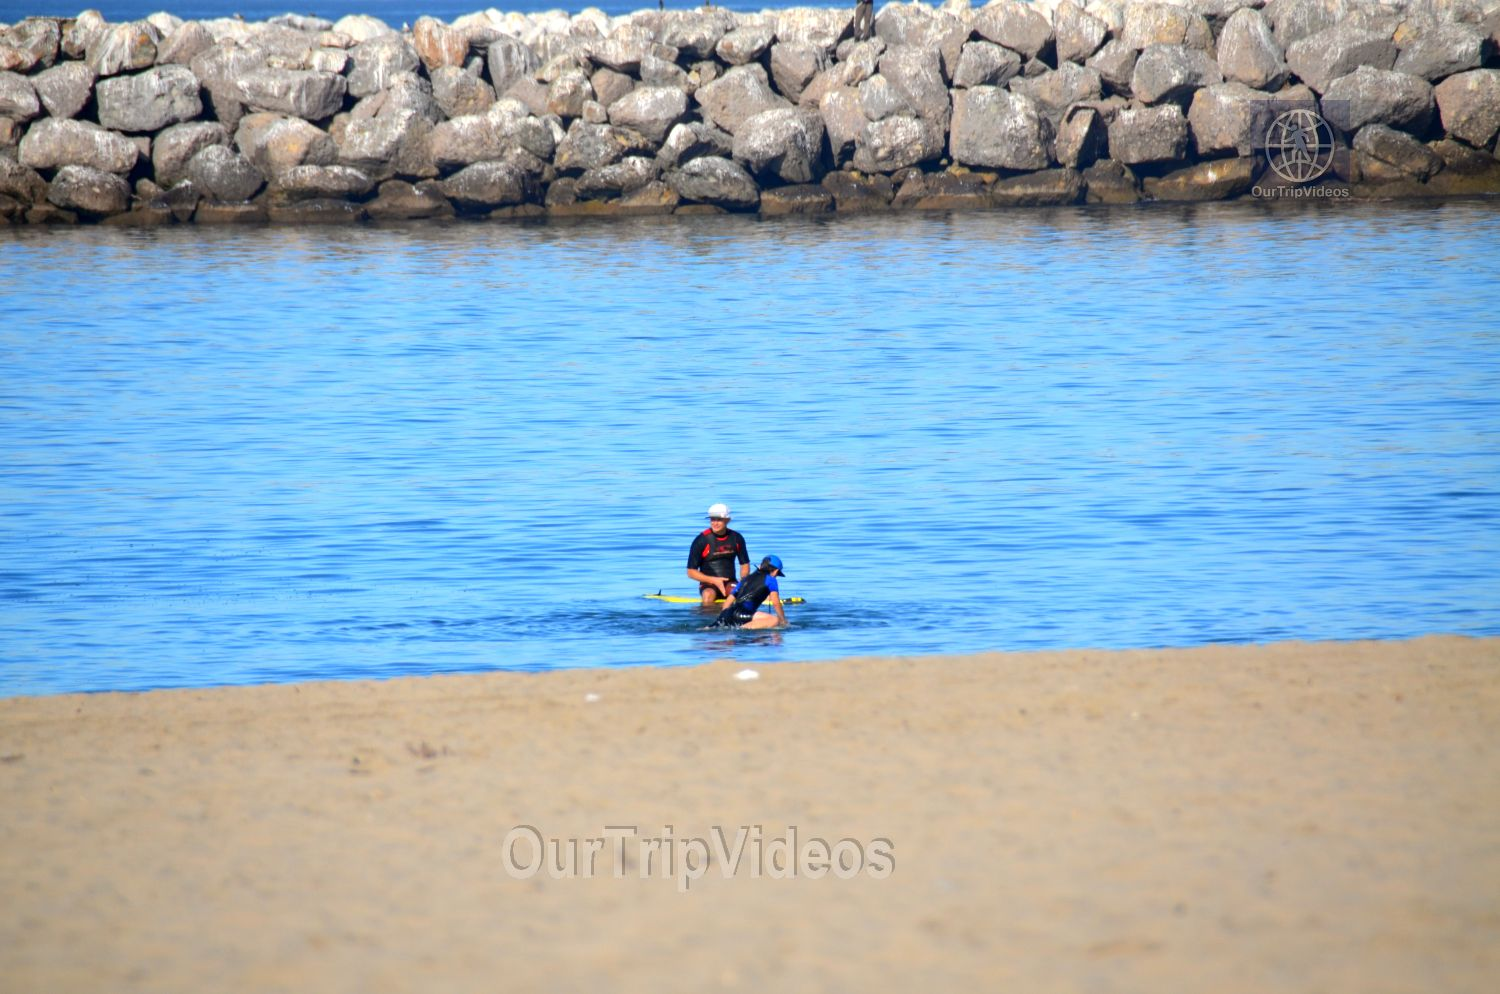 The Robert JL Visitor Center and Harbor cove beach, Ventura, CA, USA - Picture 24 of 25